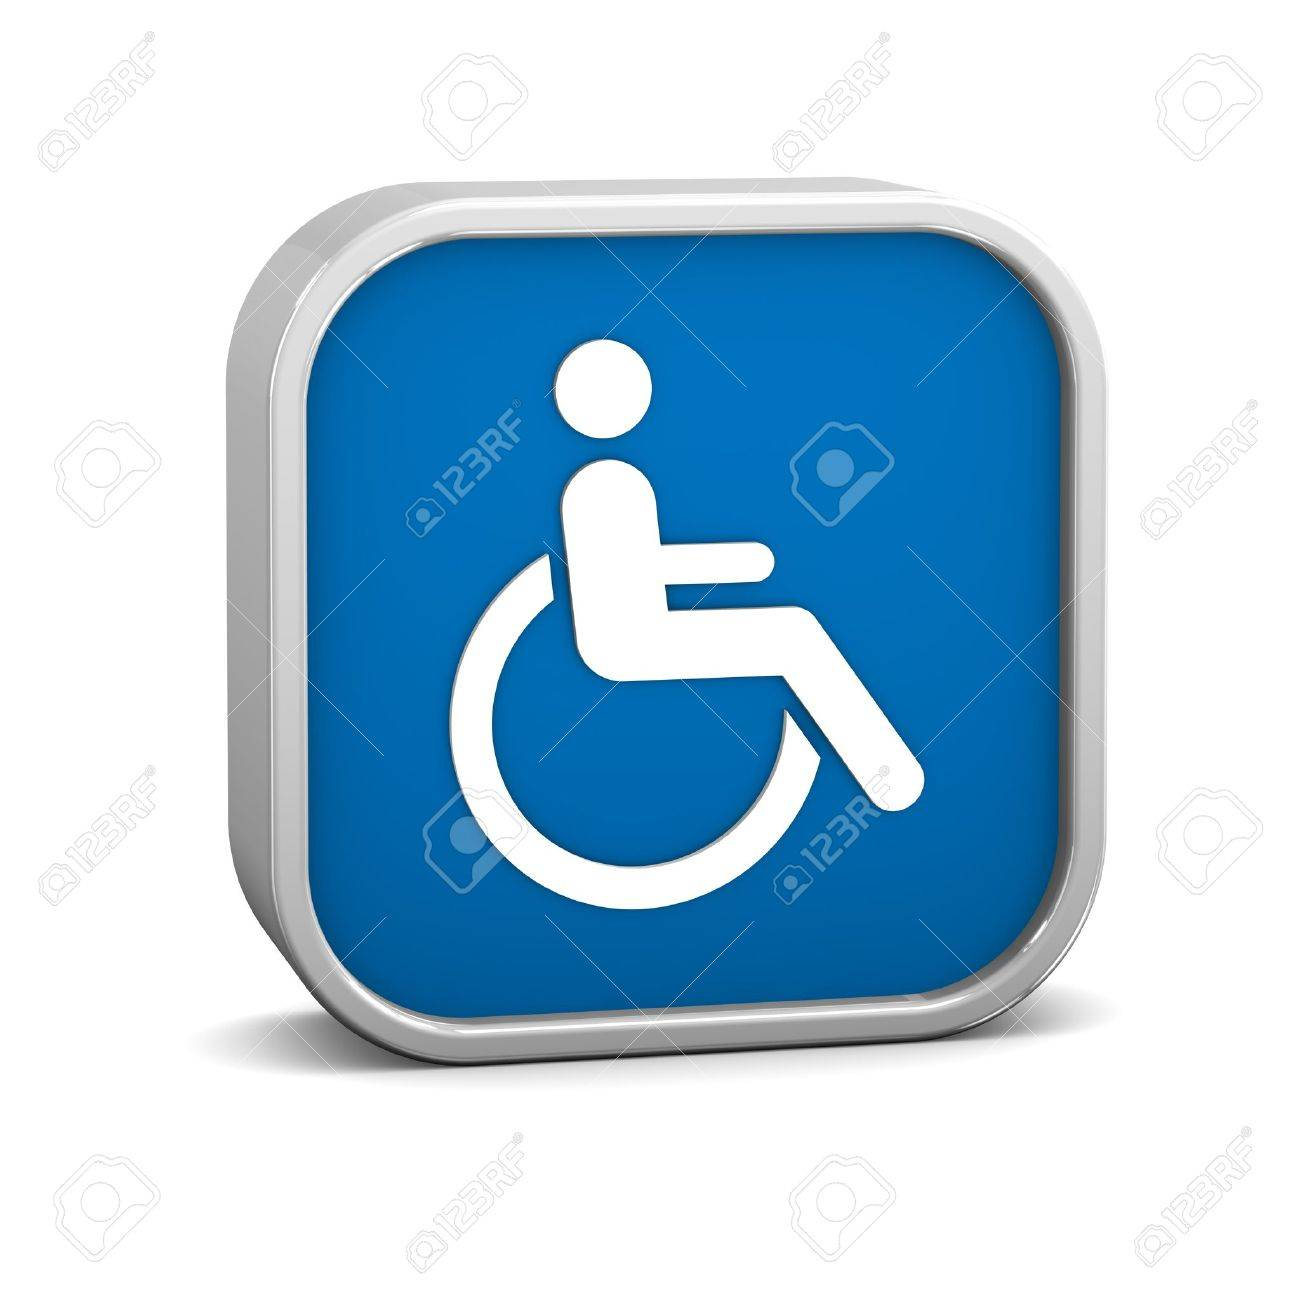 Wheelchair Accessible sign on a white background. Part of a series. Stock Photo - 13631272